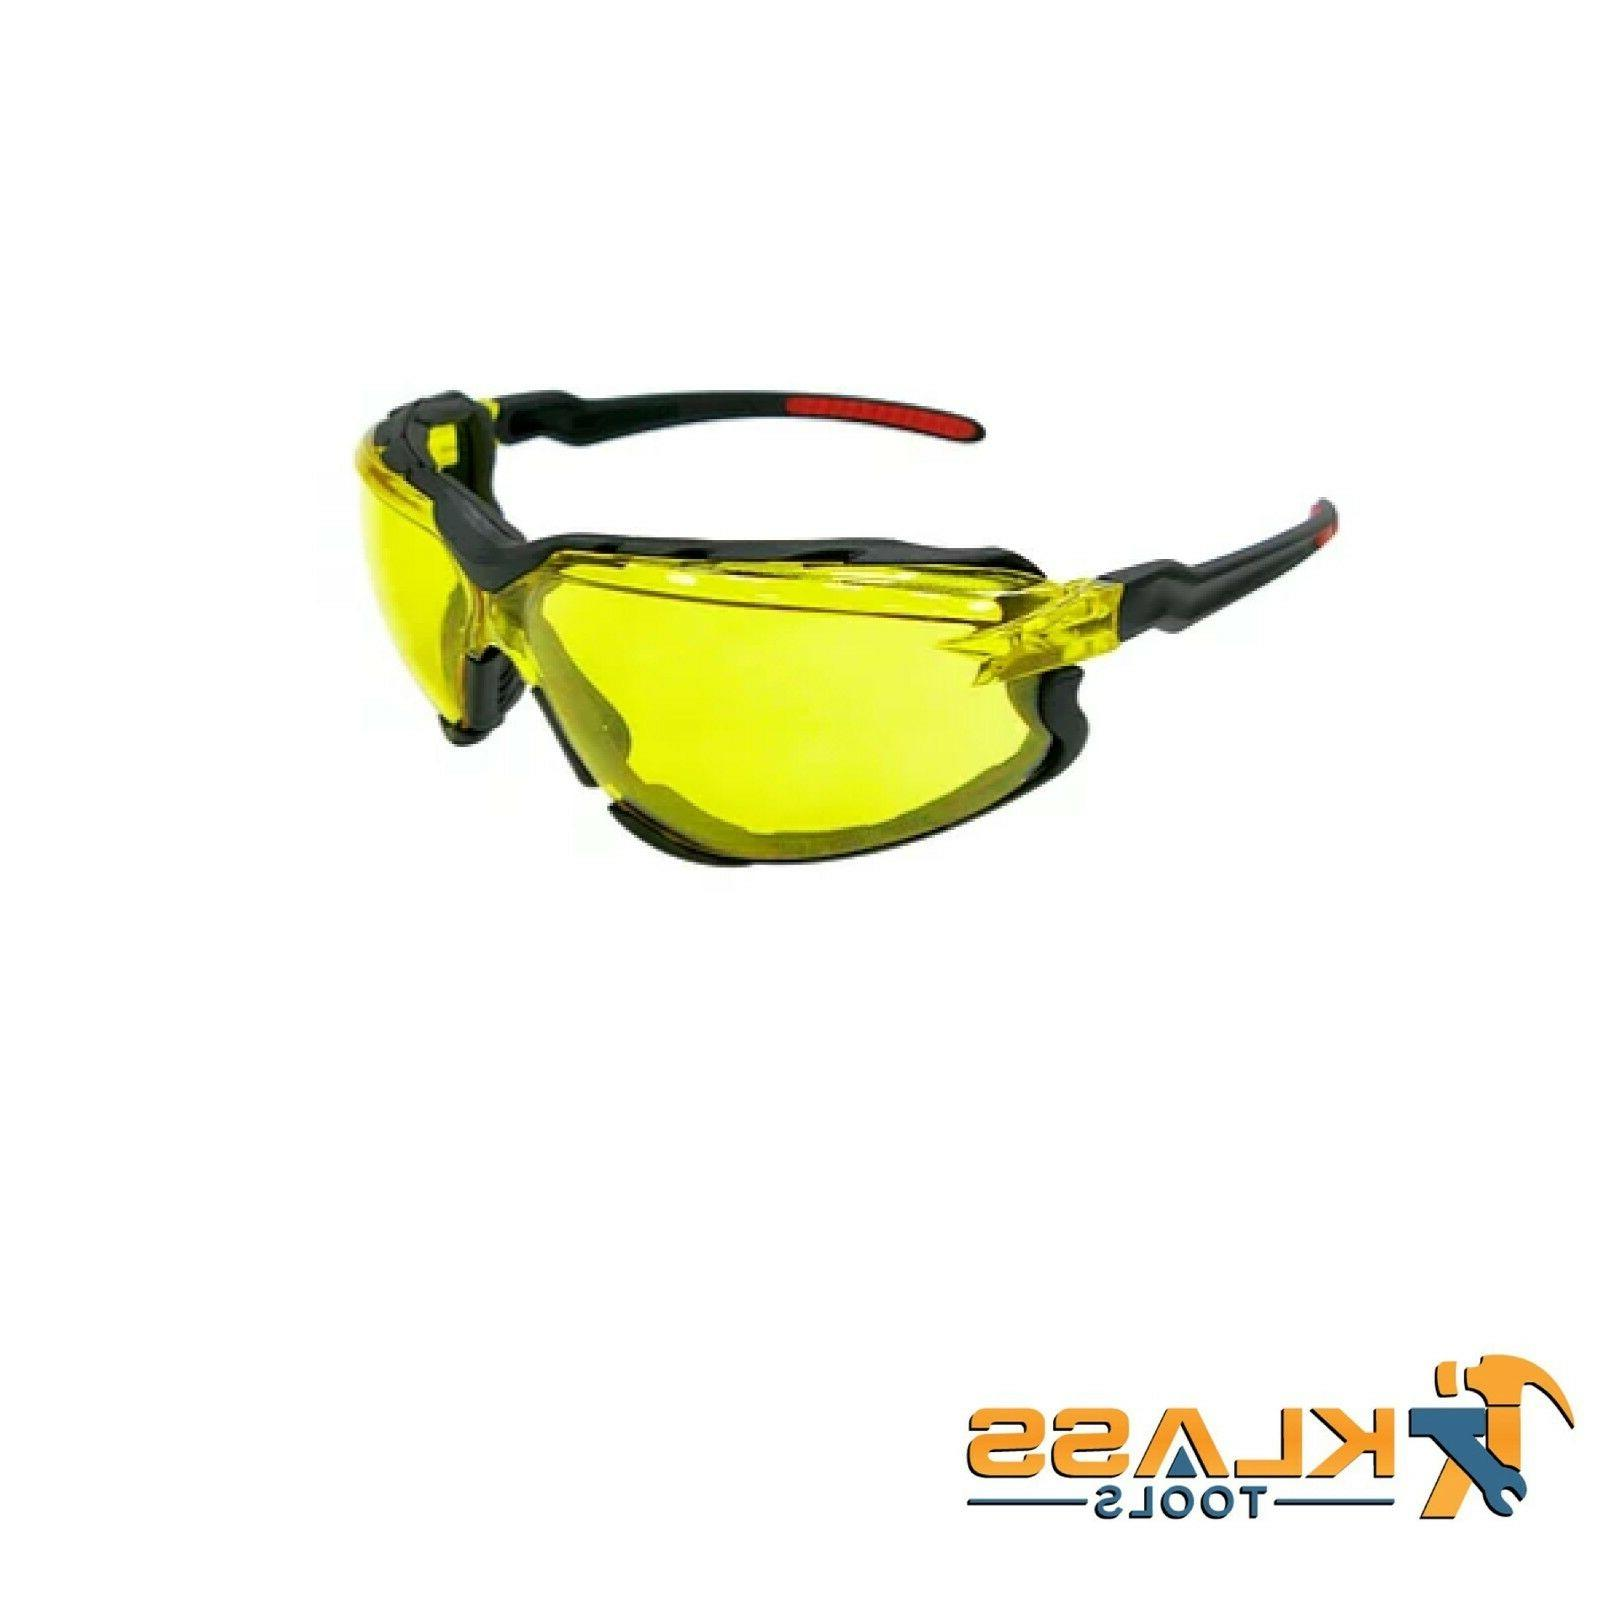 series 8500 safety glasses with amber lens